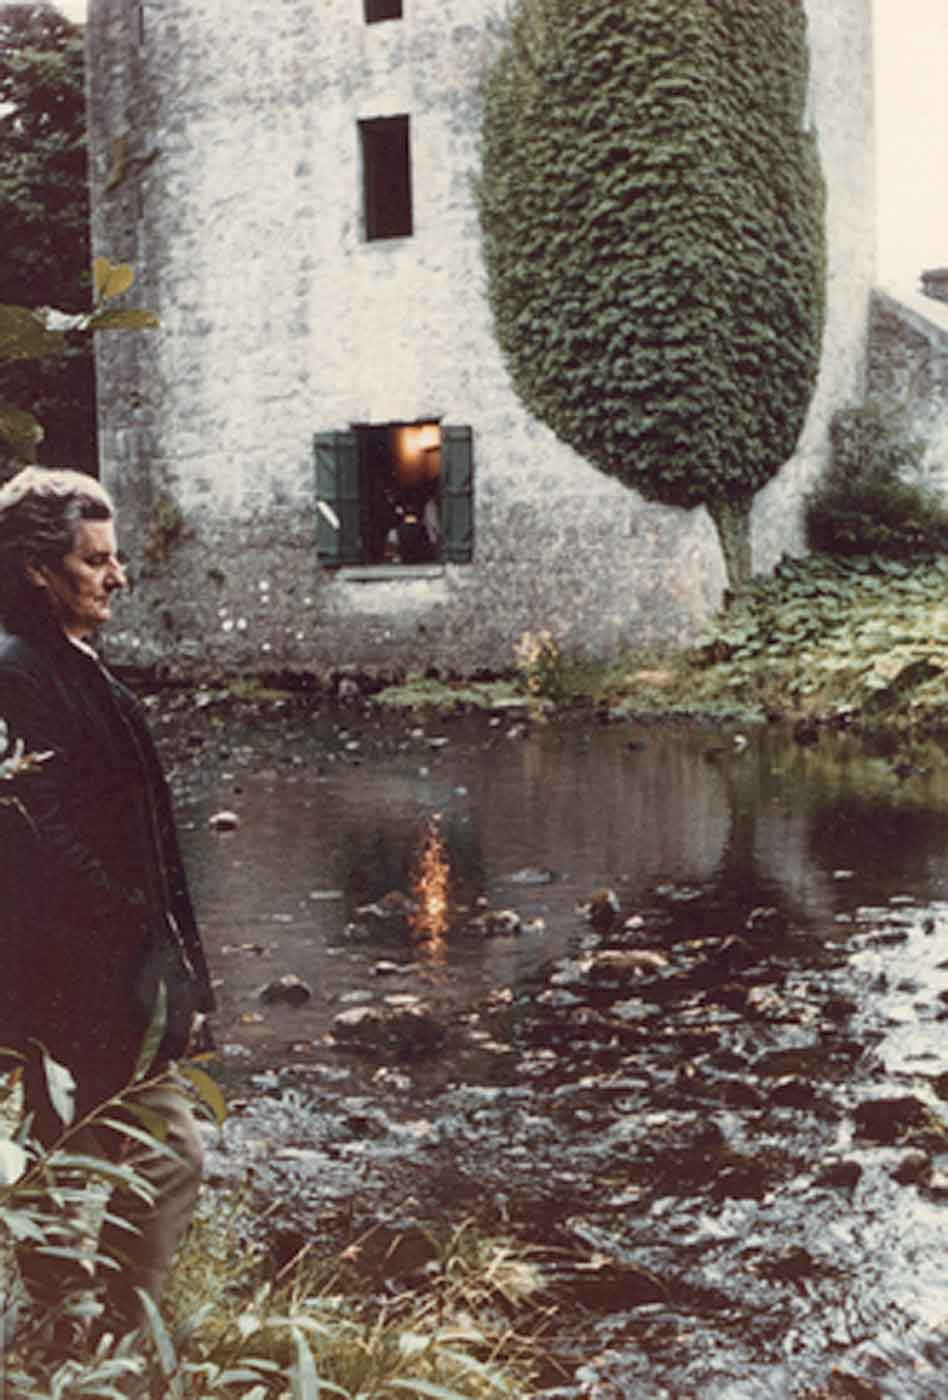 Faded photo of an elderly man standing by a large brook overlooked by a tall old stone building. - click to view larger image